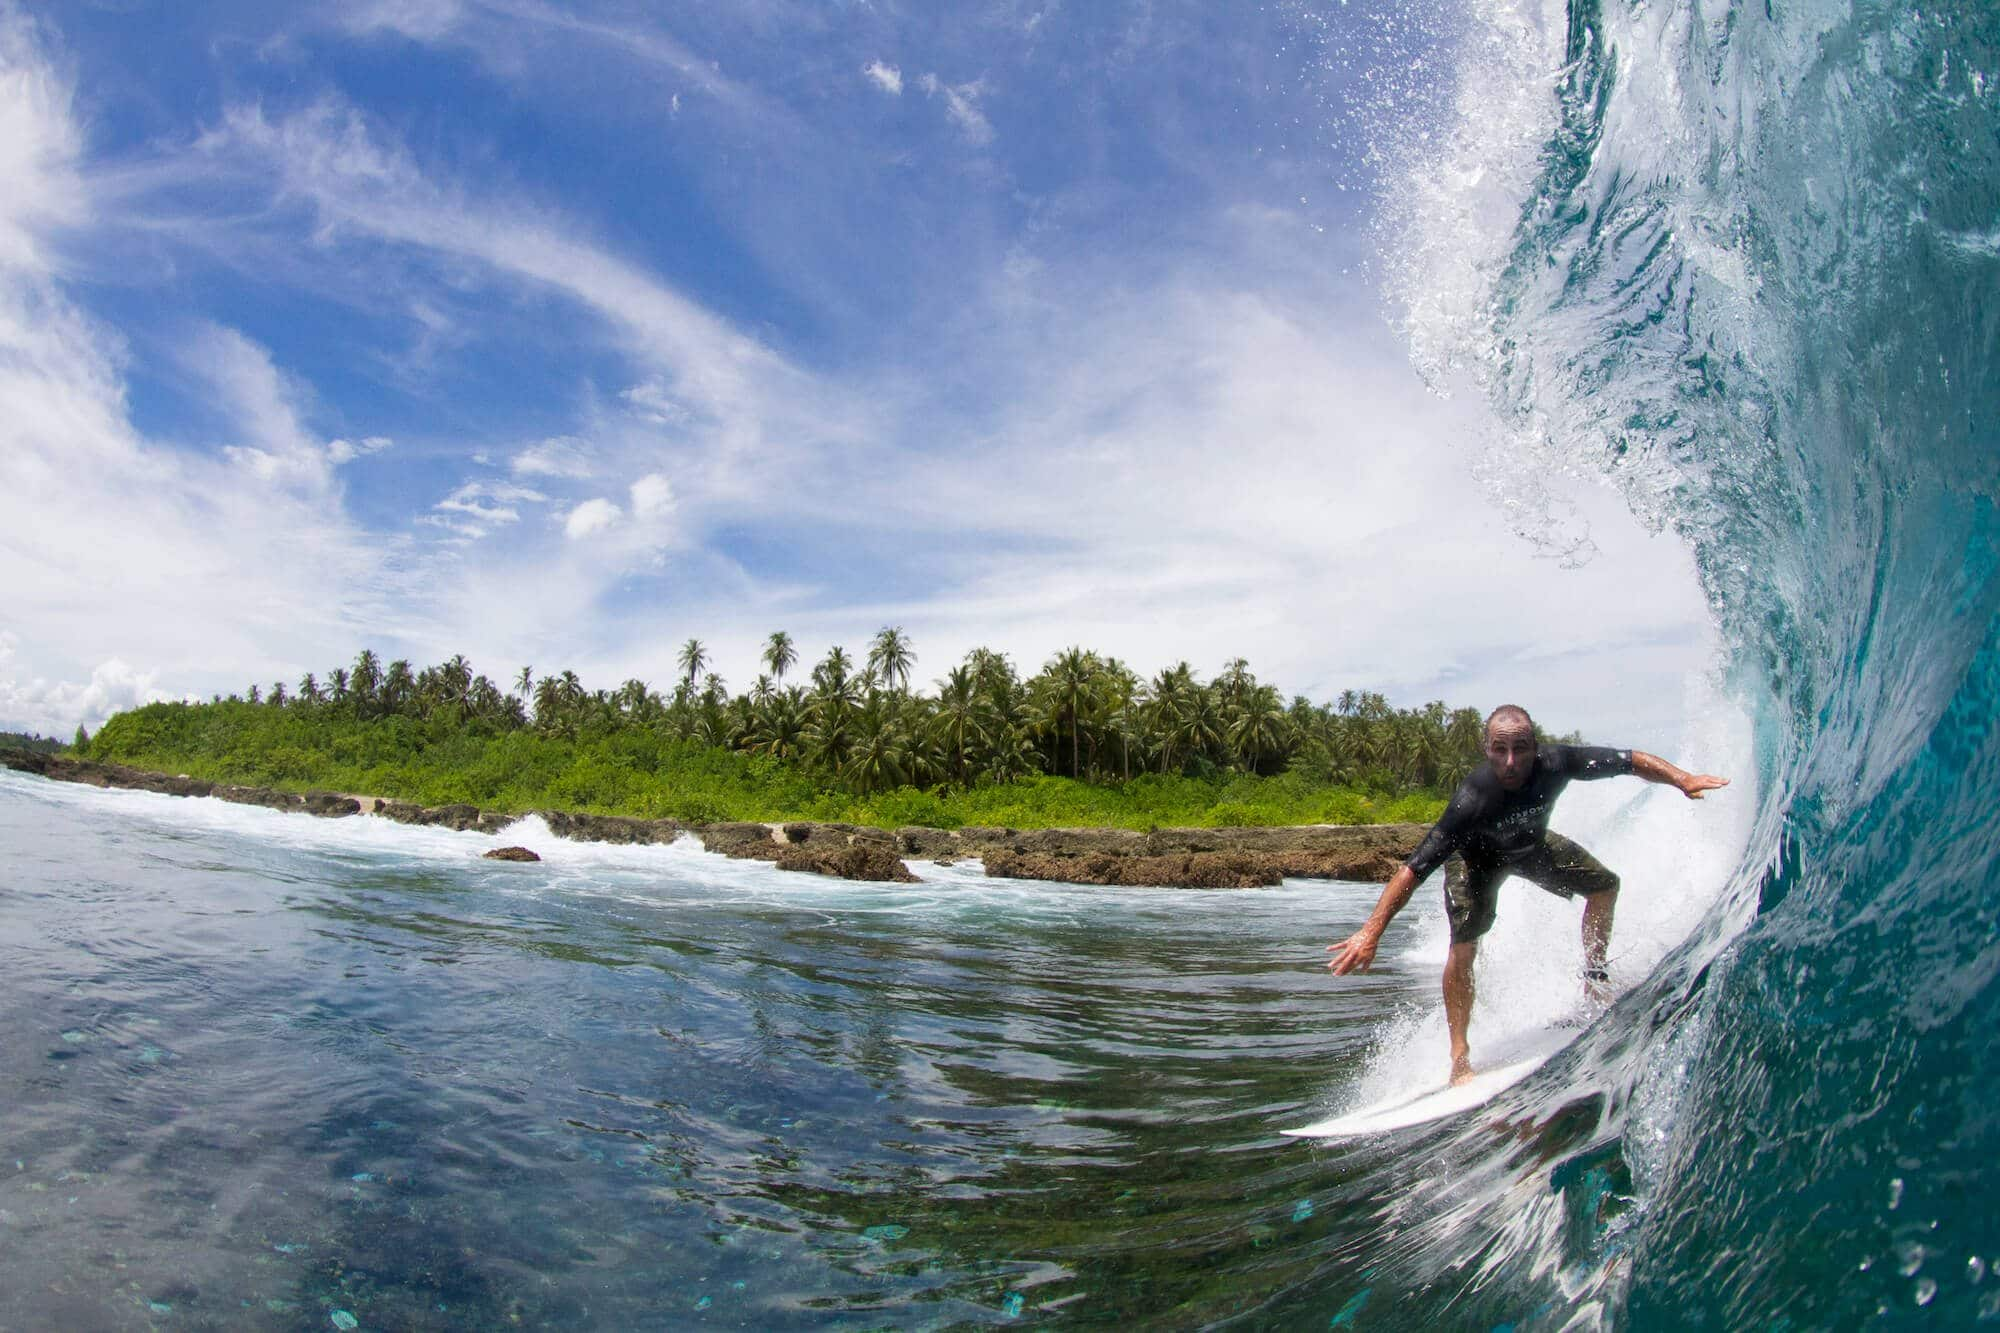 a surfer got the nice wave for surfing, surf banyak